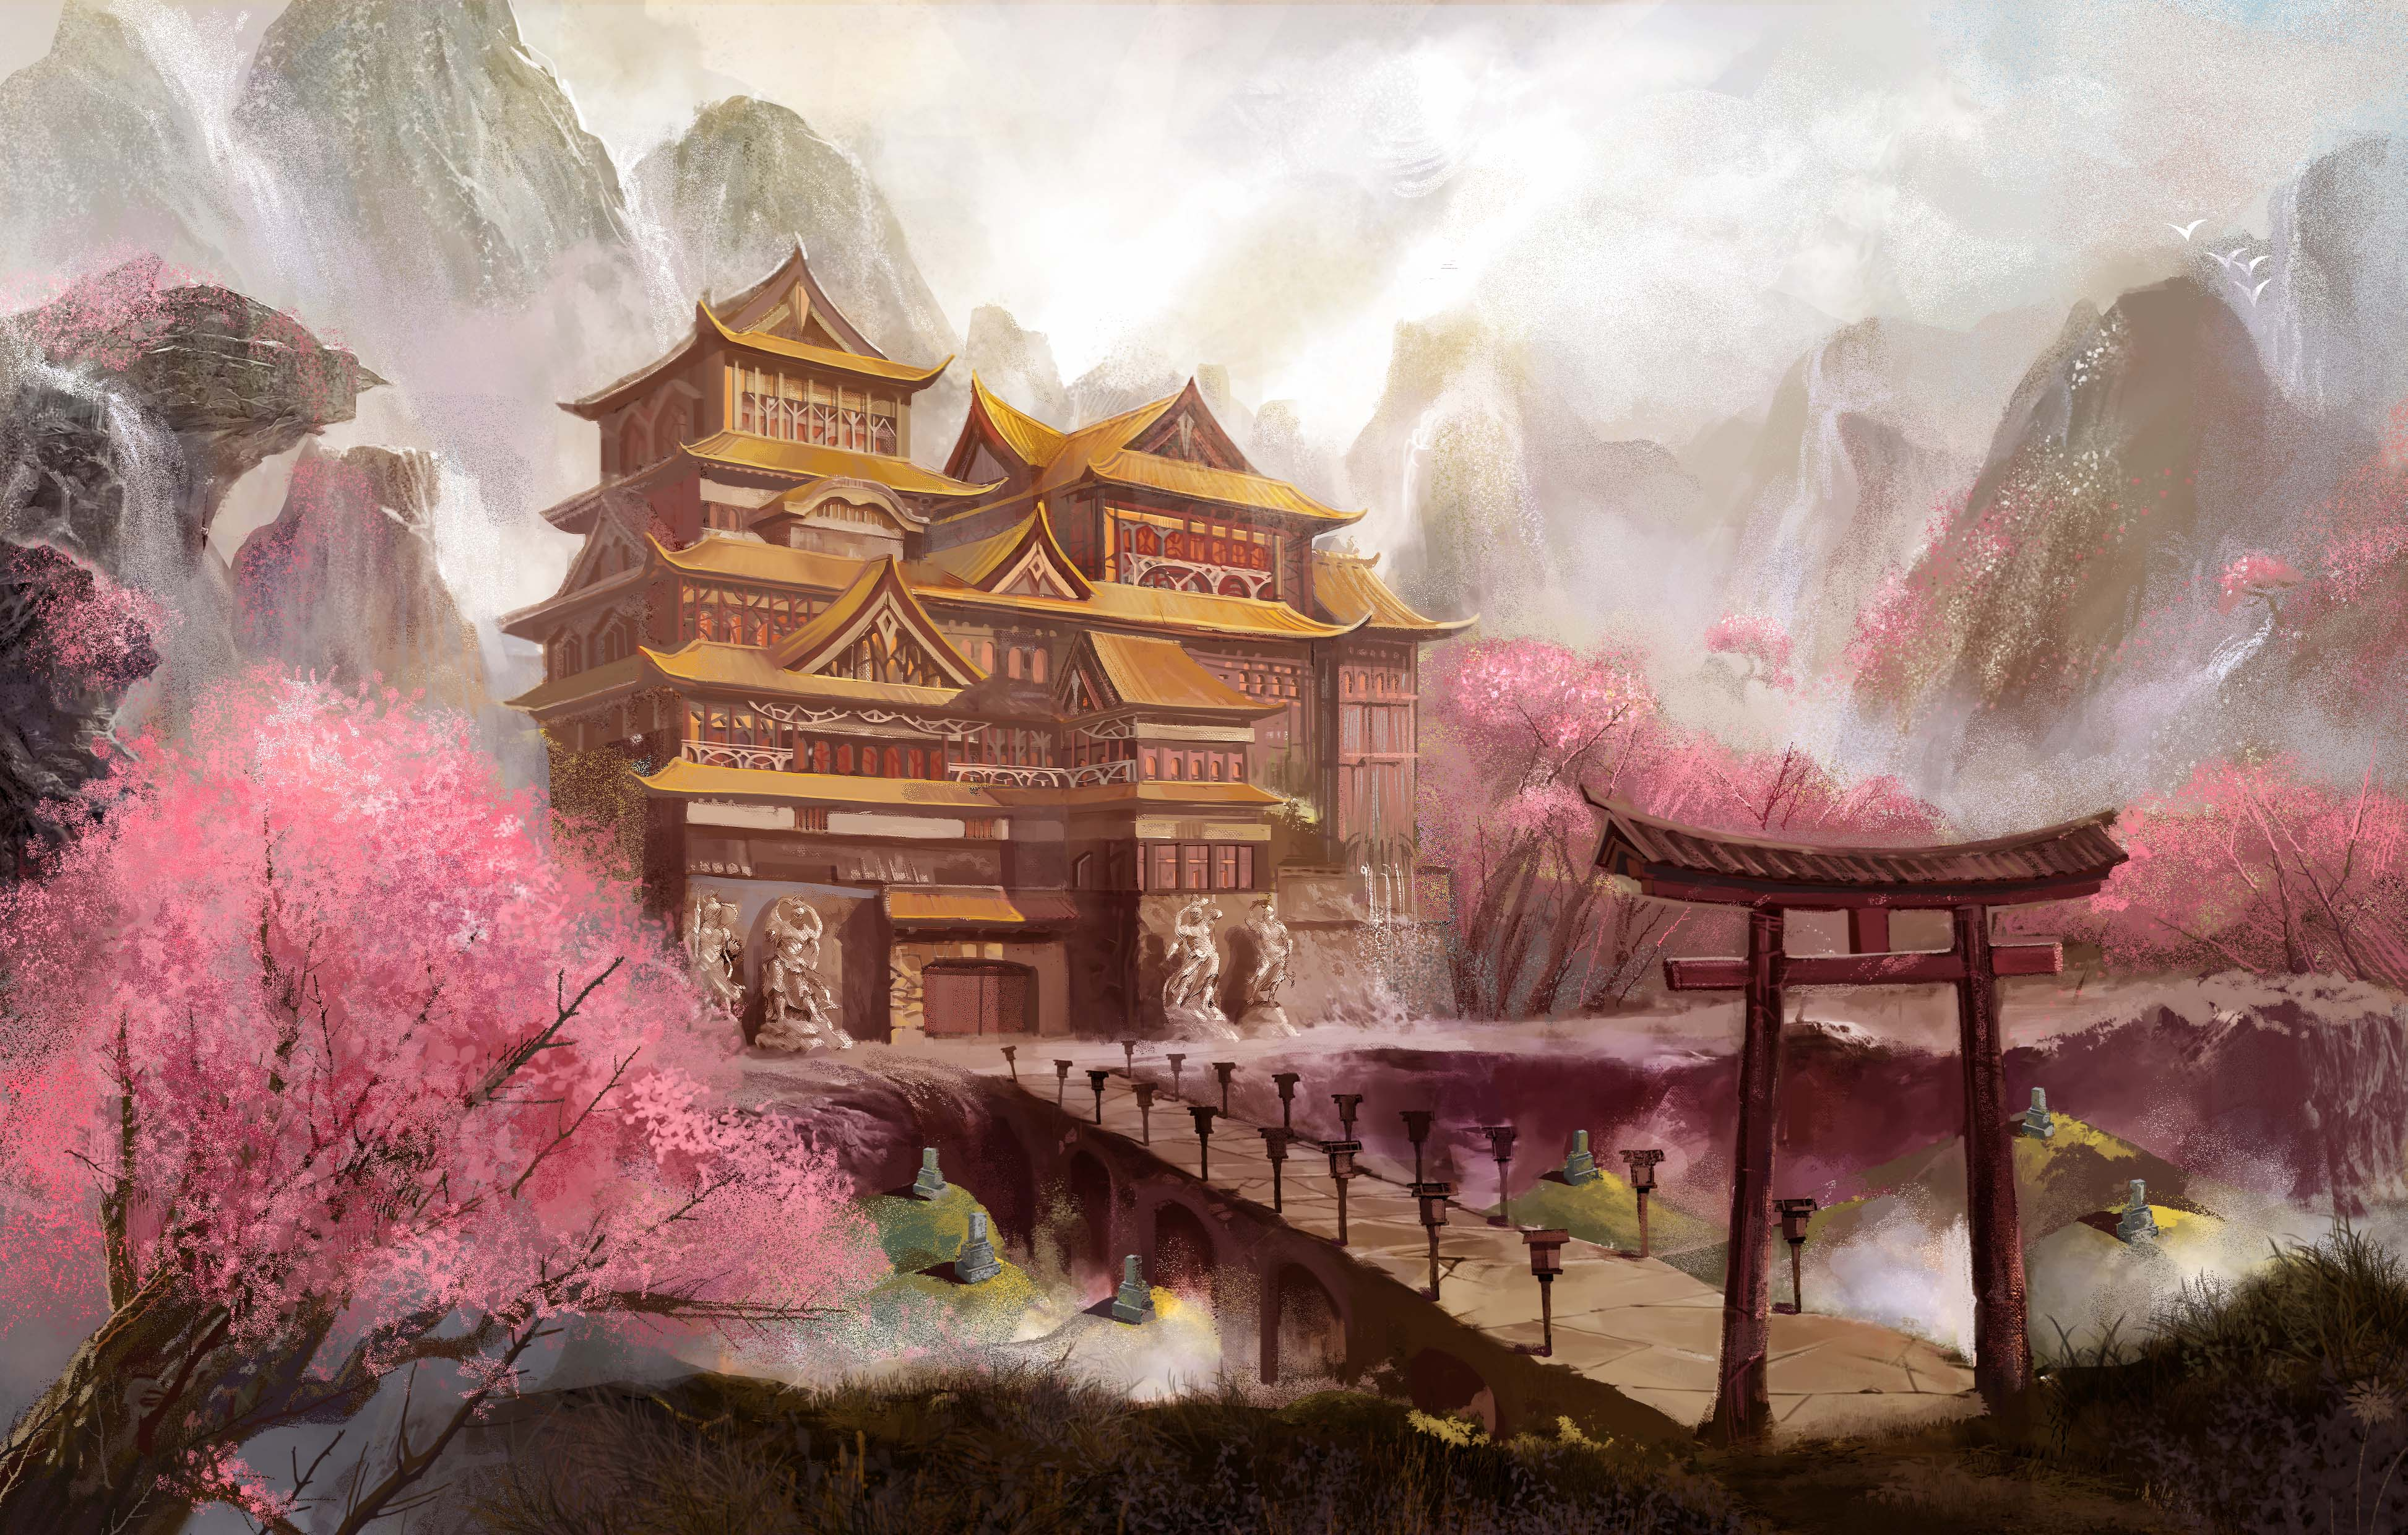 Book Illustration: The Koryo Hall of Adventures